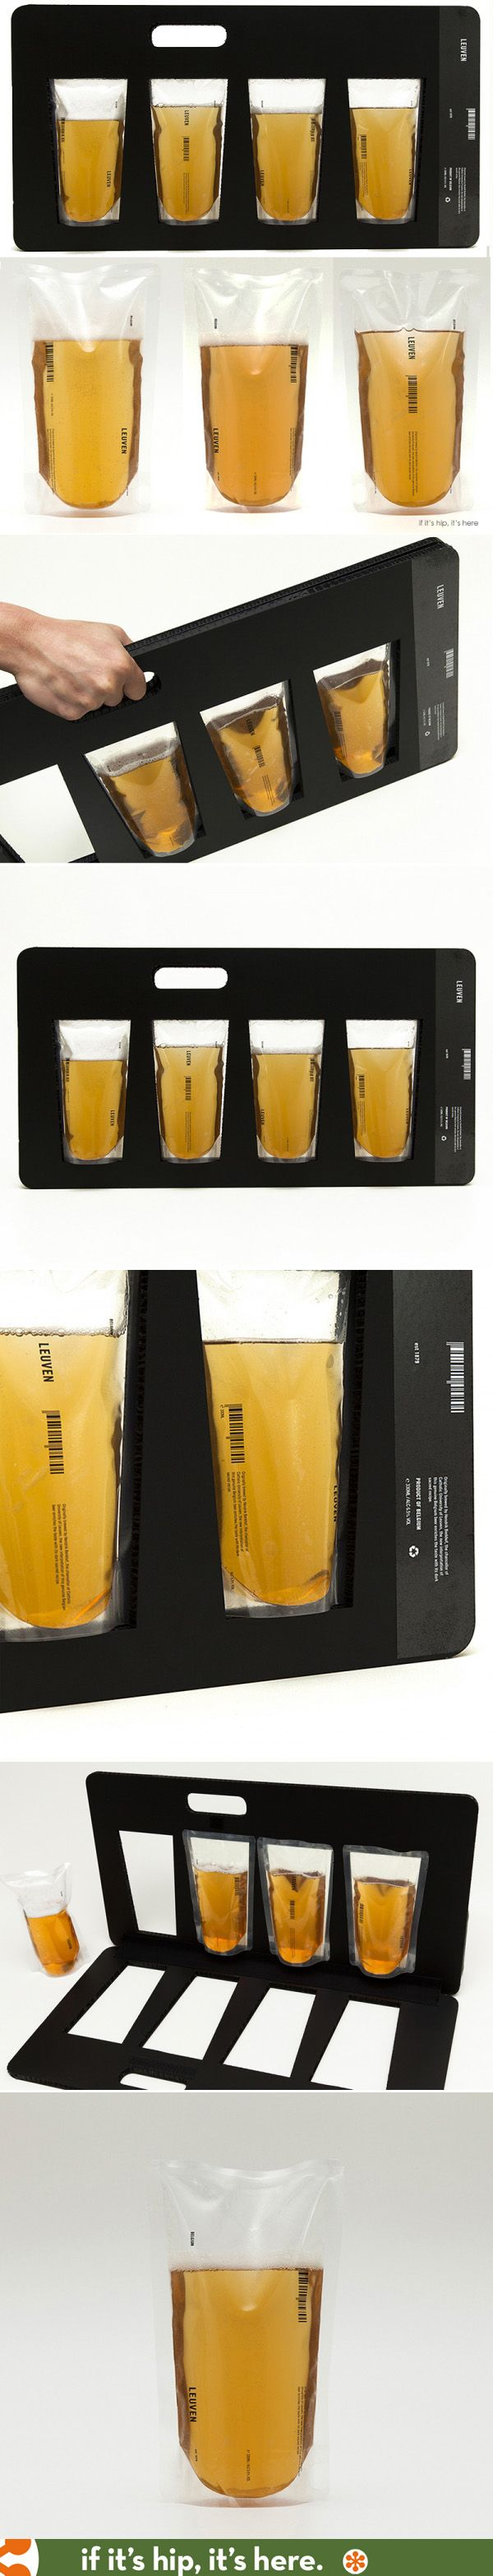 Leuven Beer Packaging is a unique concept of PET vacuum sealed beer packaged in a recyclable, light carrying case.